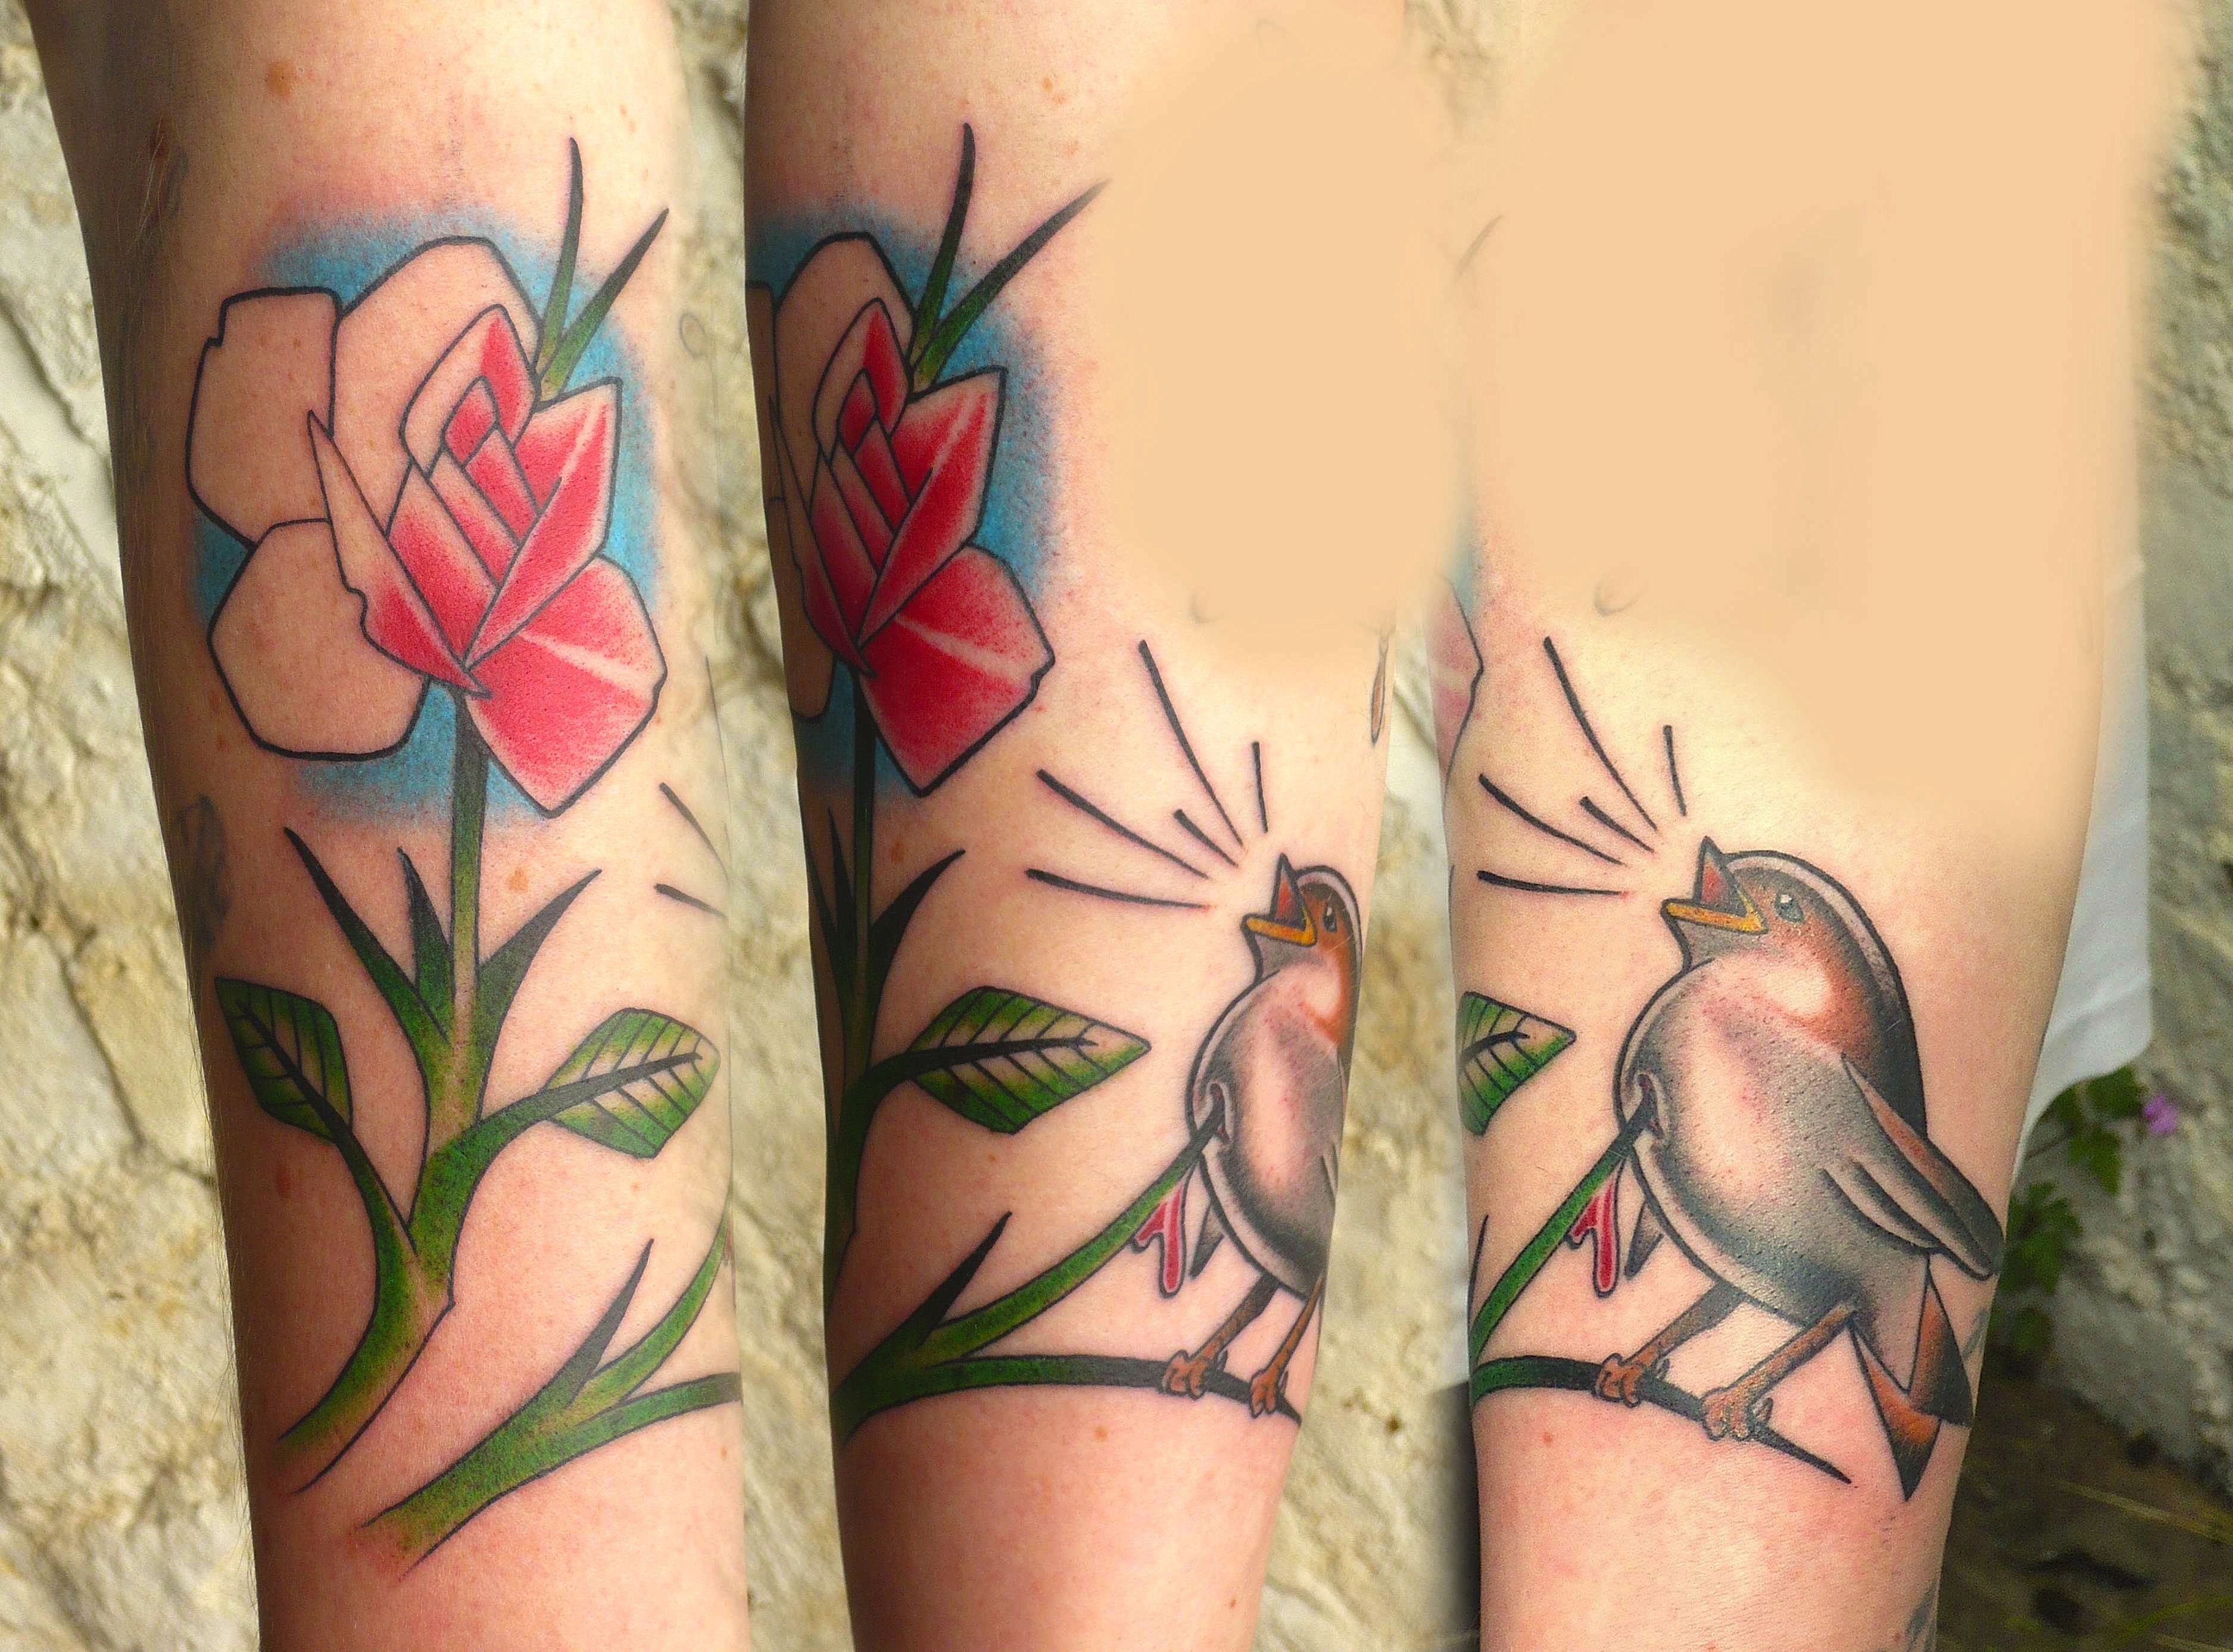 The nightingale and the rose AWESOME TATTOO